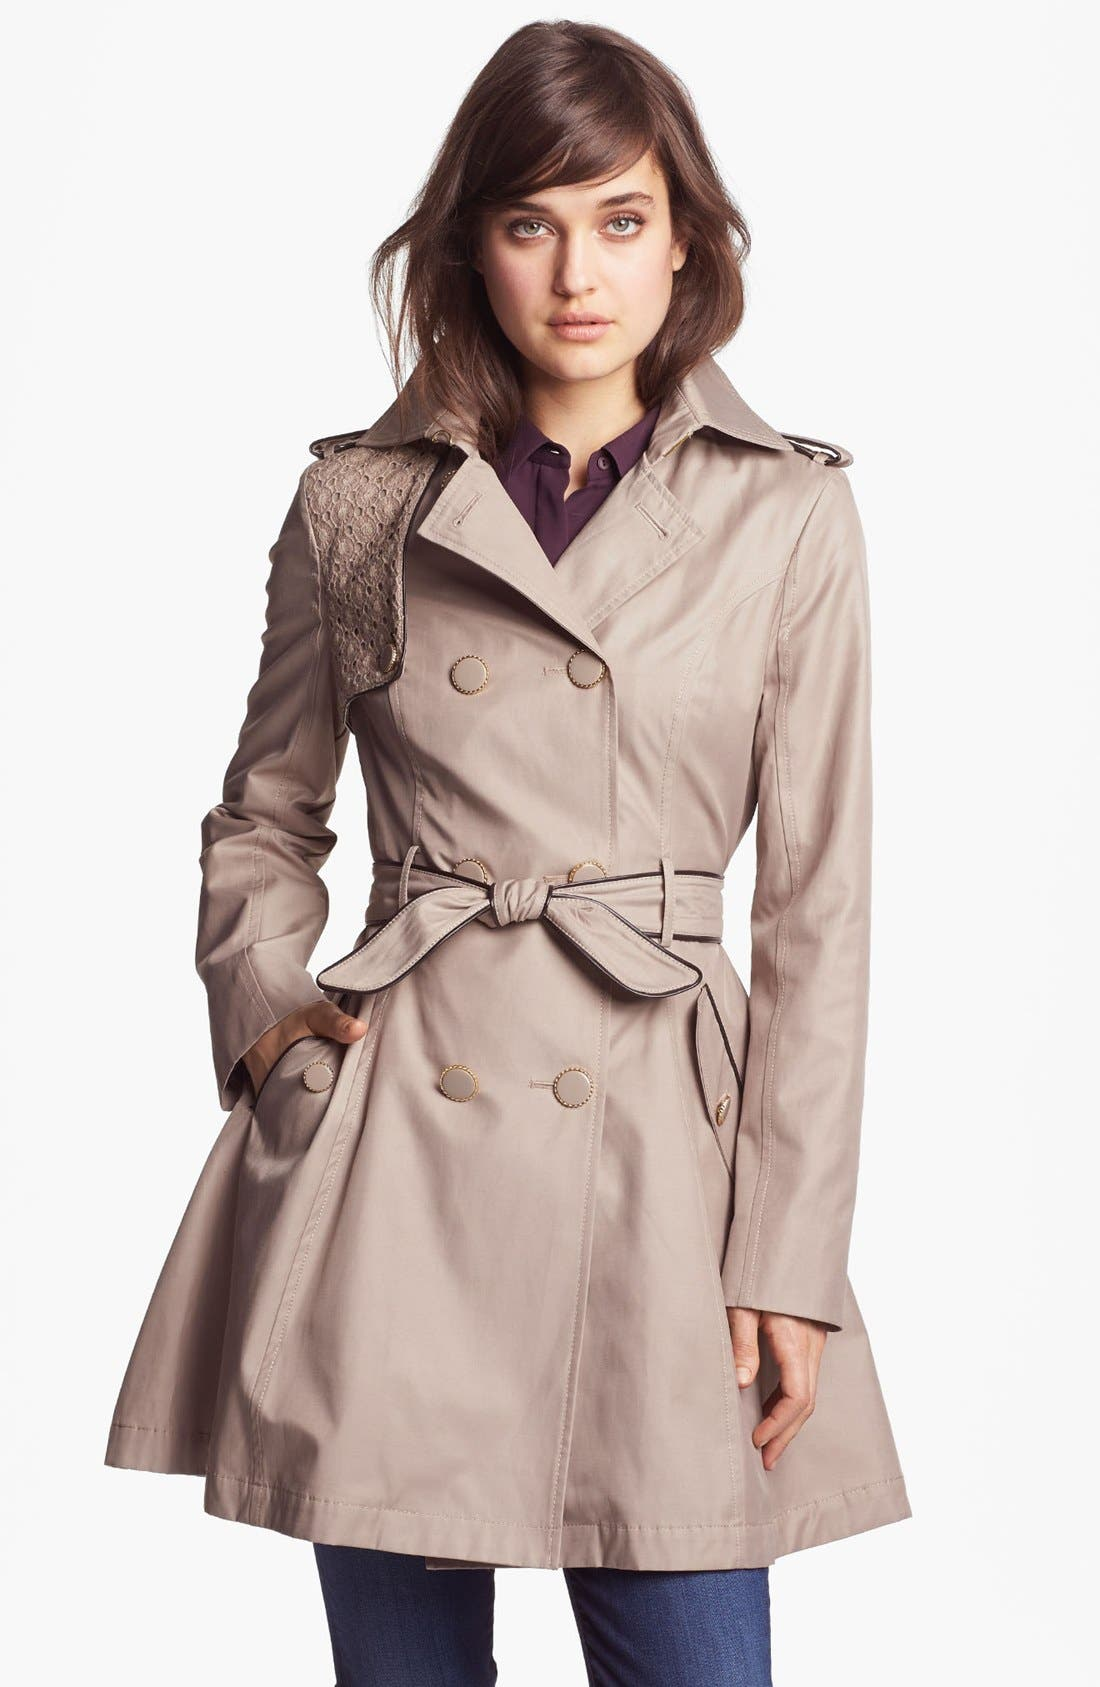 Alternate Image 1 Selected - Betsey Johnson Lace Flap Double Breasted Trench Coat (Online Only)